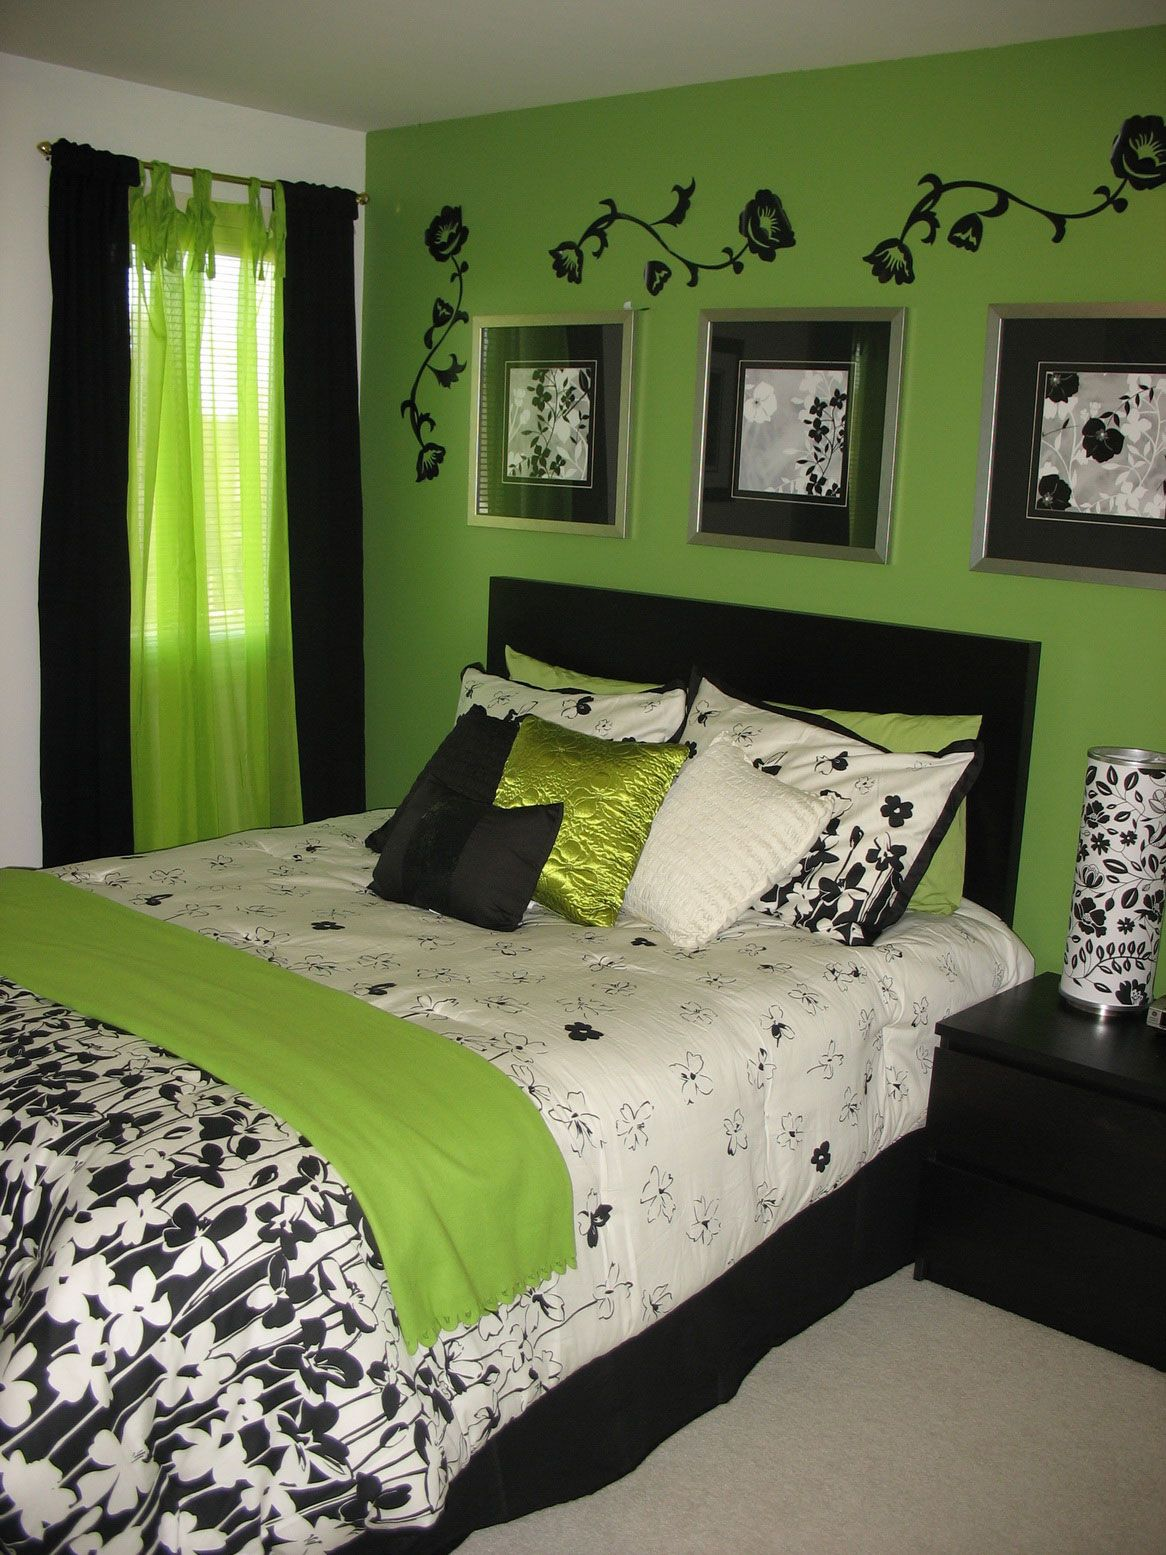 Bedroom colors green and white - Calming Black And Green Themed Bedroom Design With Beautiful Black Flower Wall Decal Green